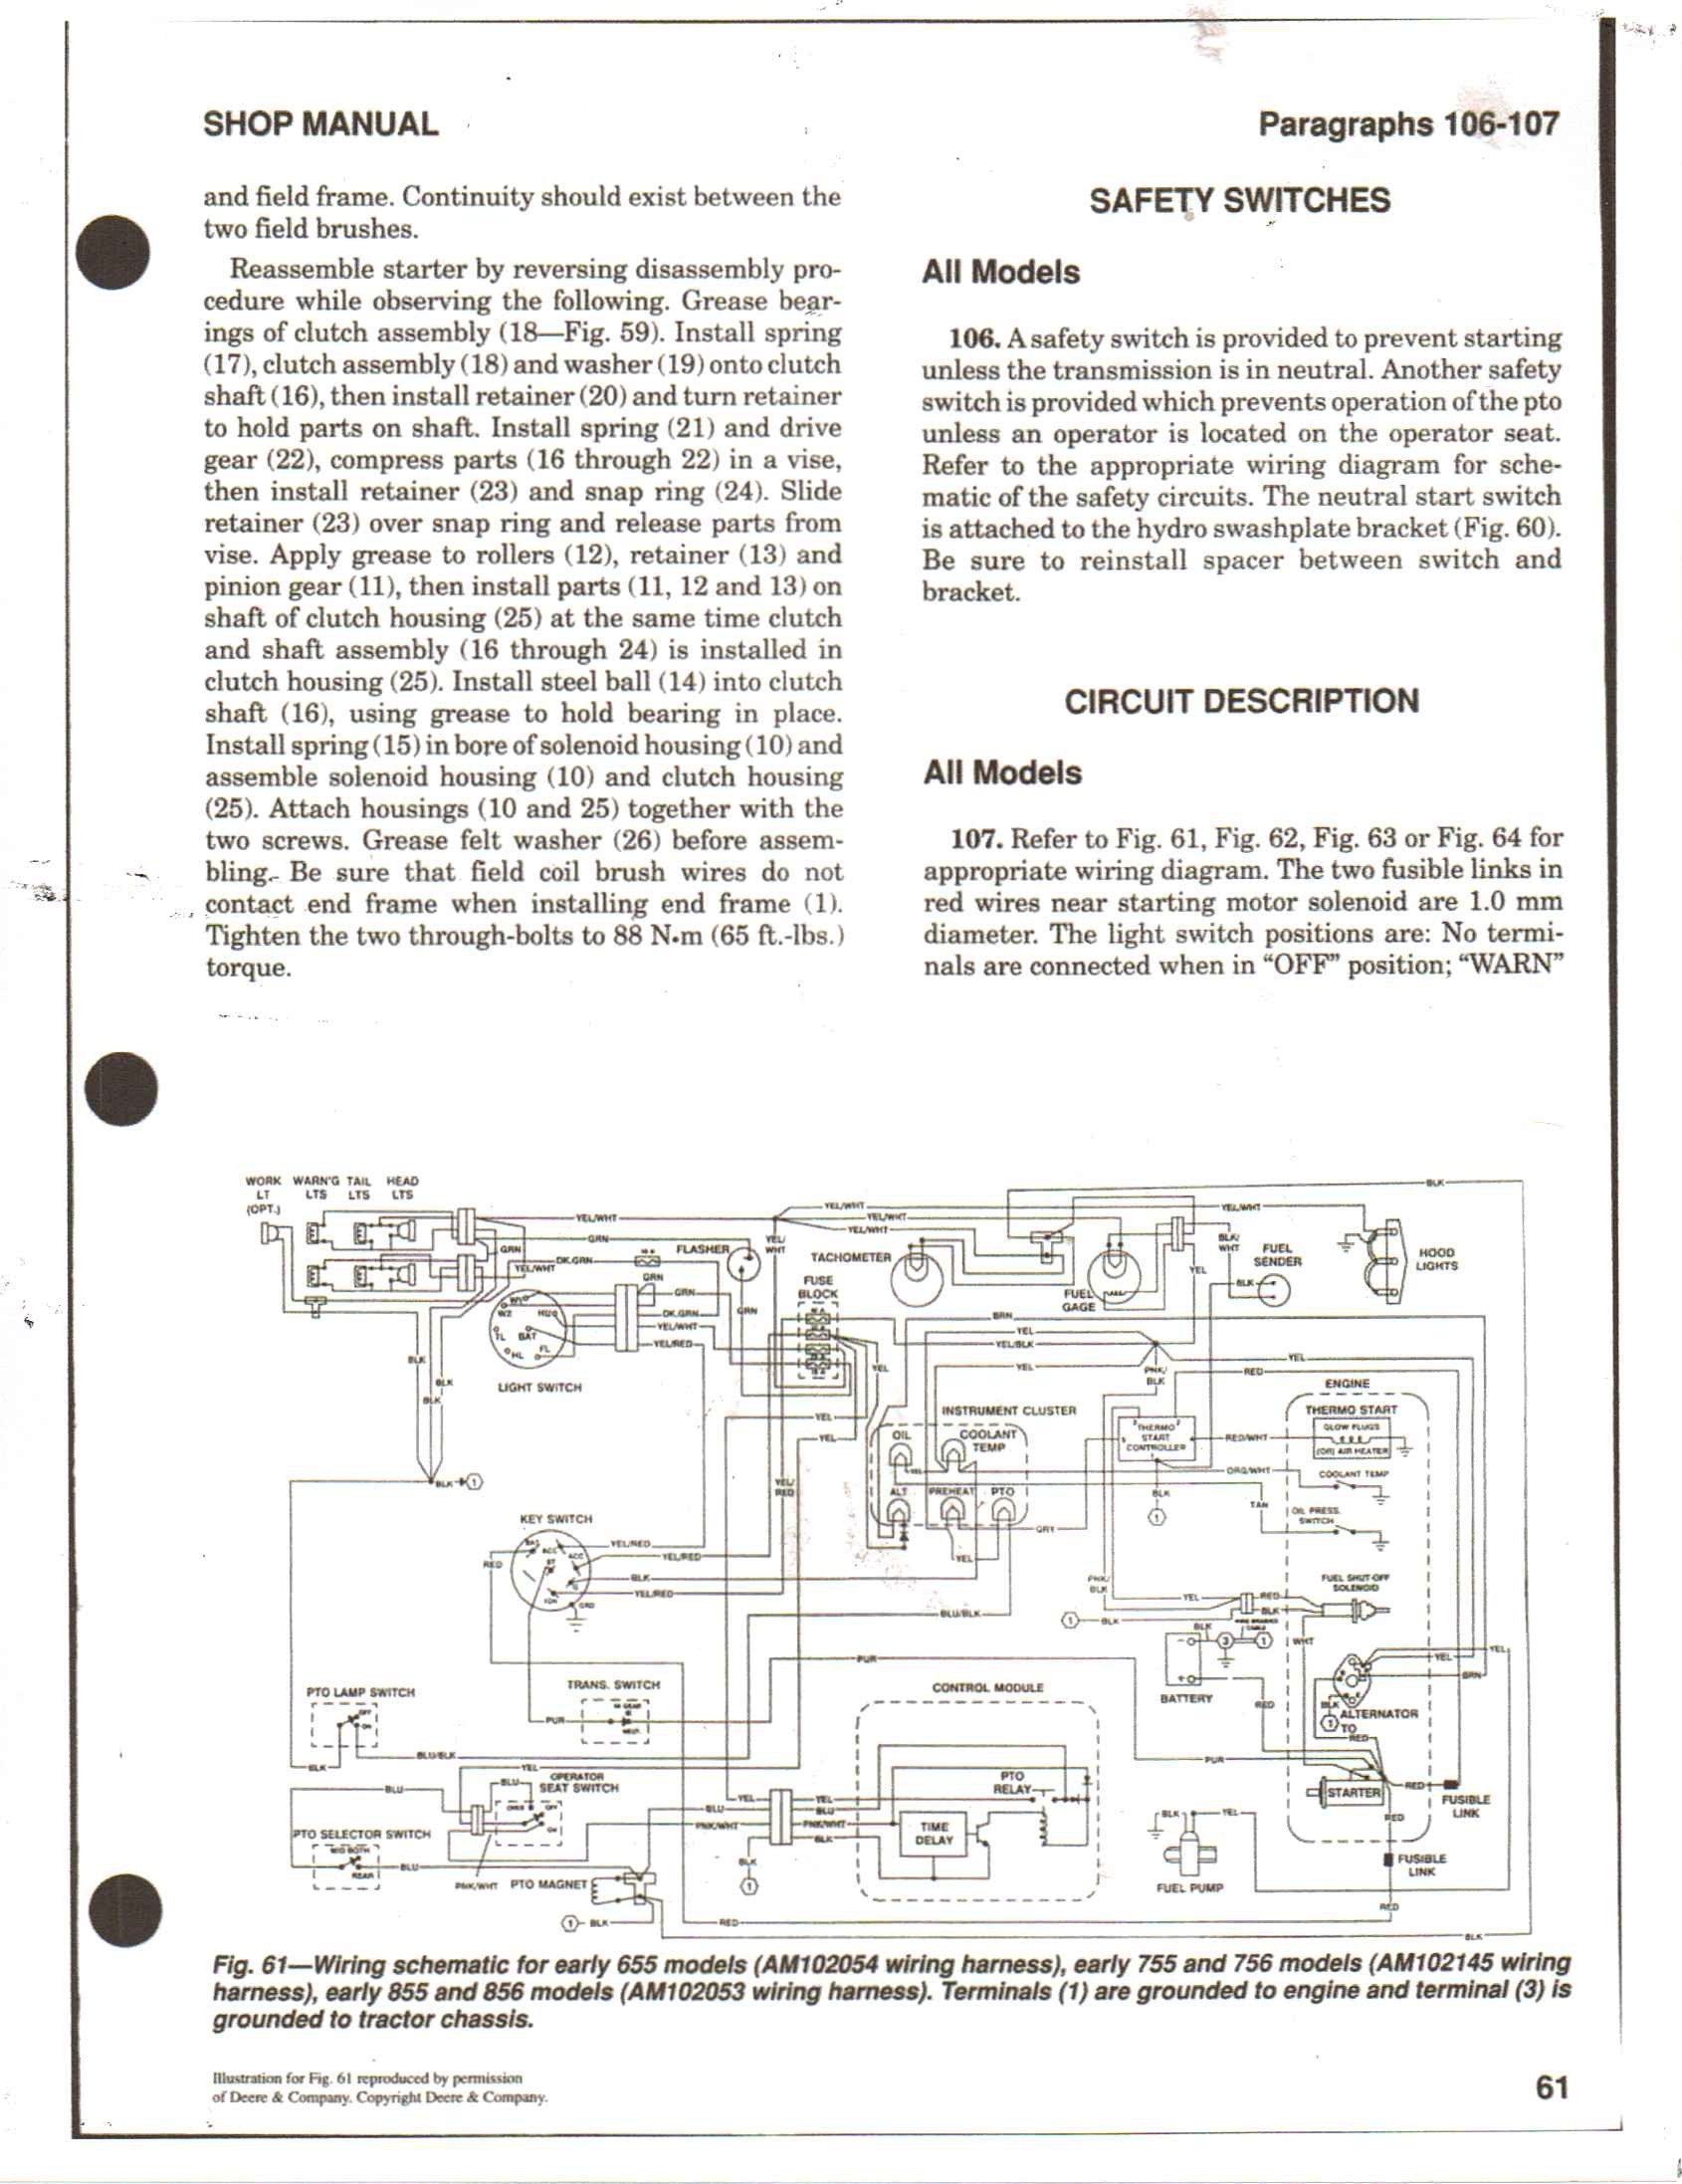 Jd 345 Wiring Diagram 56d25 John Deere 655 Wiring Diagram Of Jd 345 Wiring Diagram